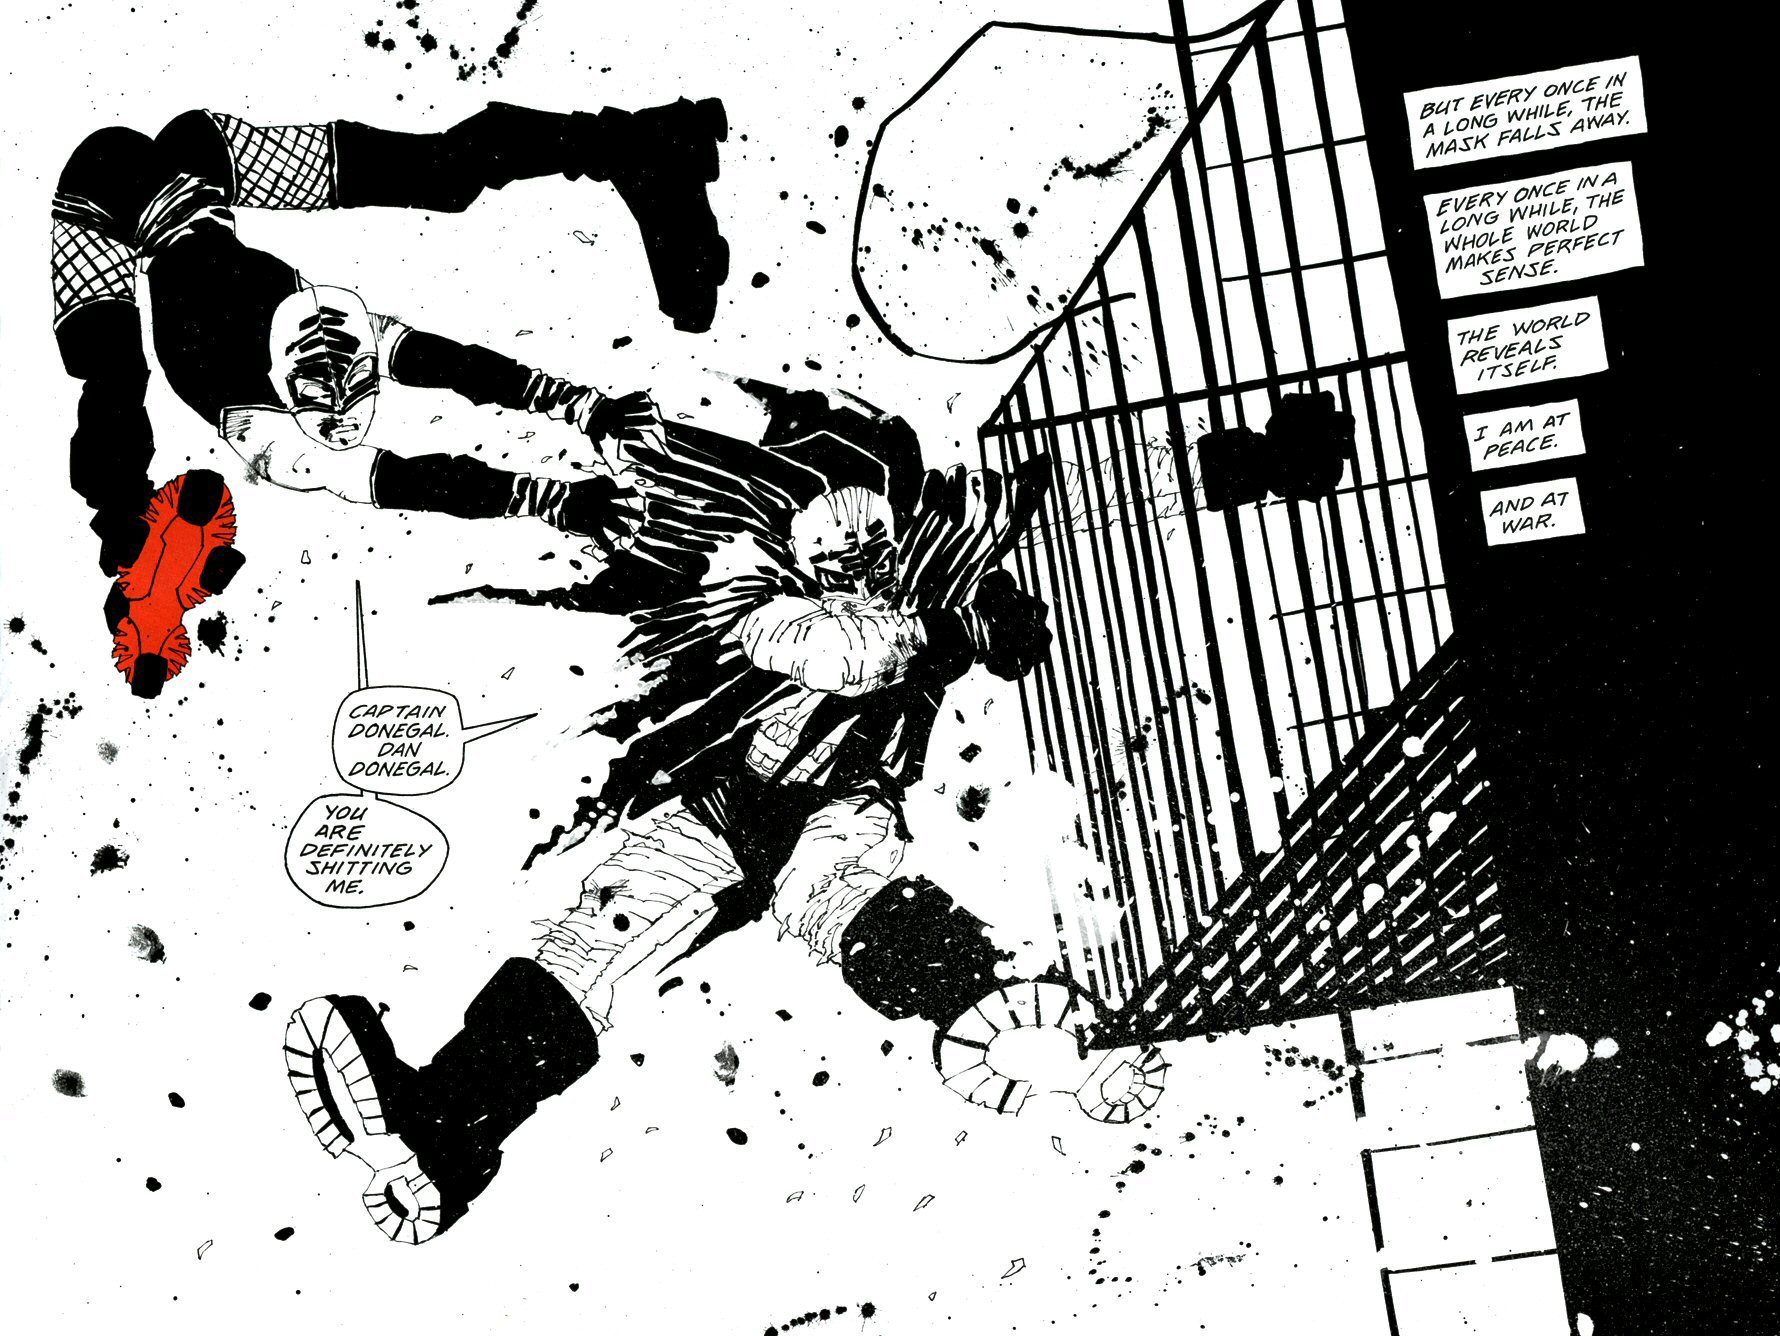 Read online Frank Miller's Holy Terror comic -  Issue # TPB - 70